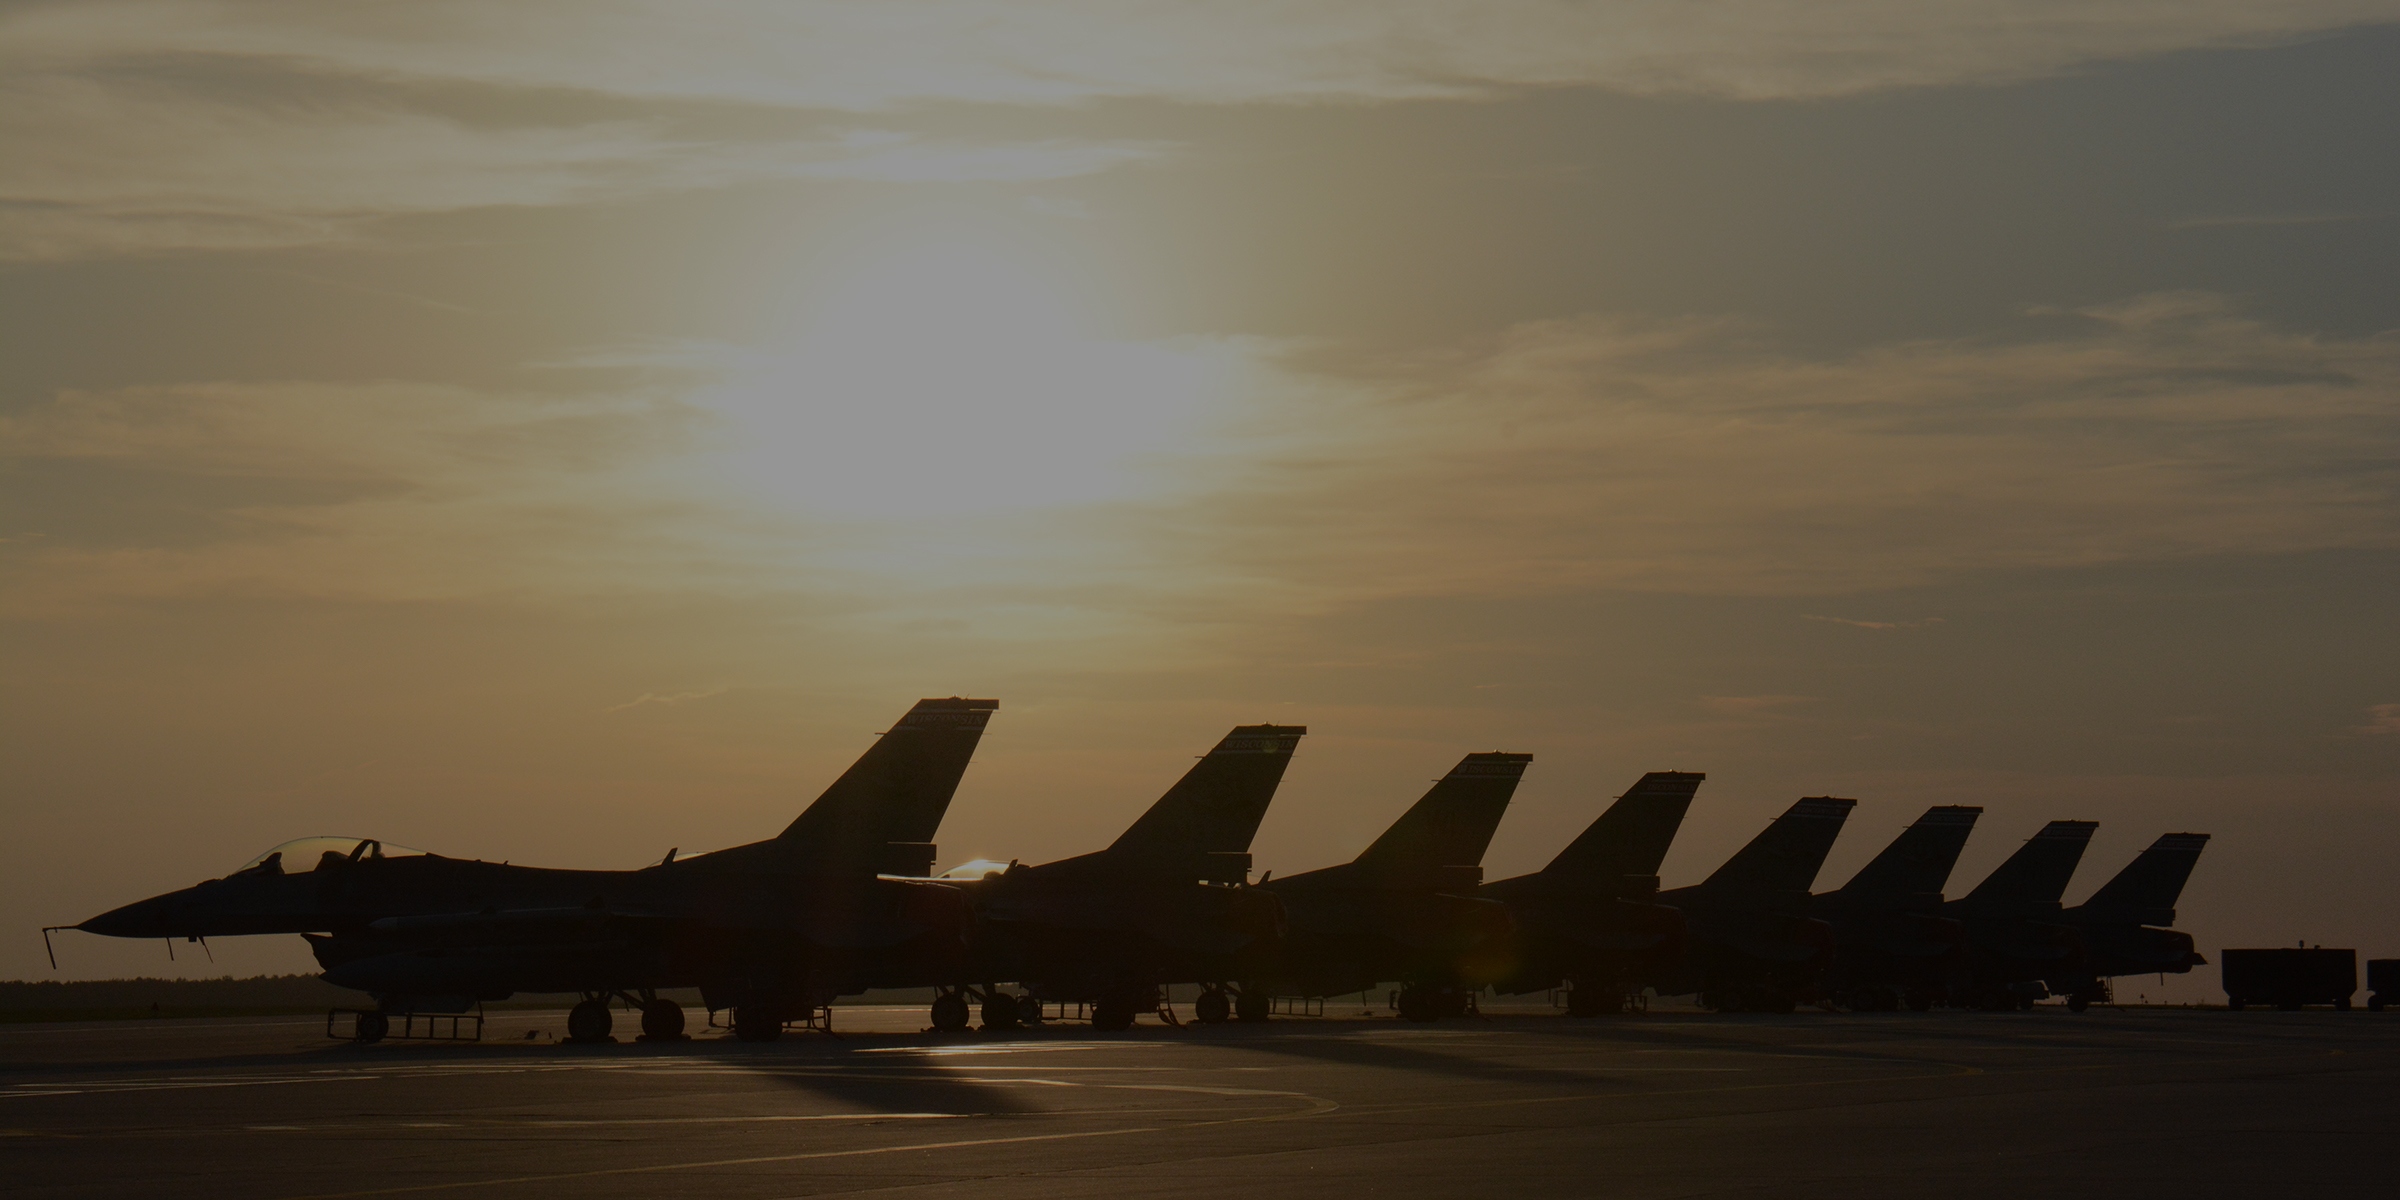 Series of jets at Truax Base during sunset